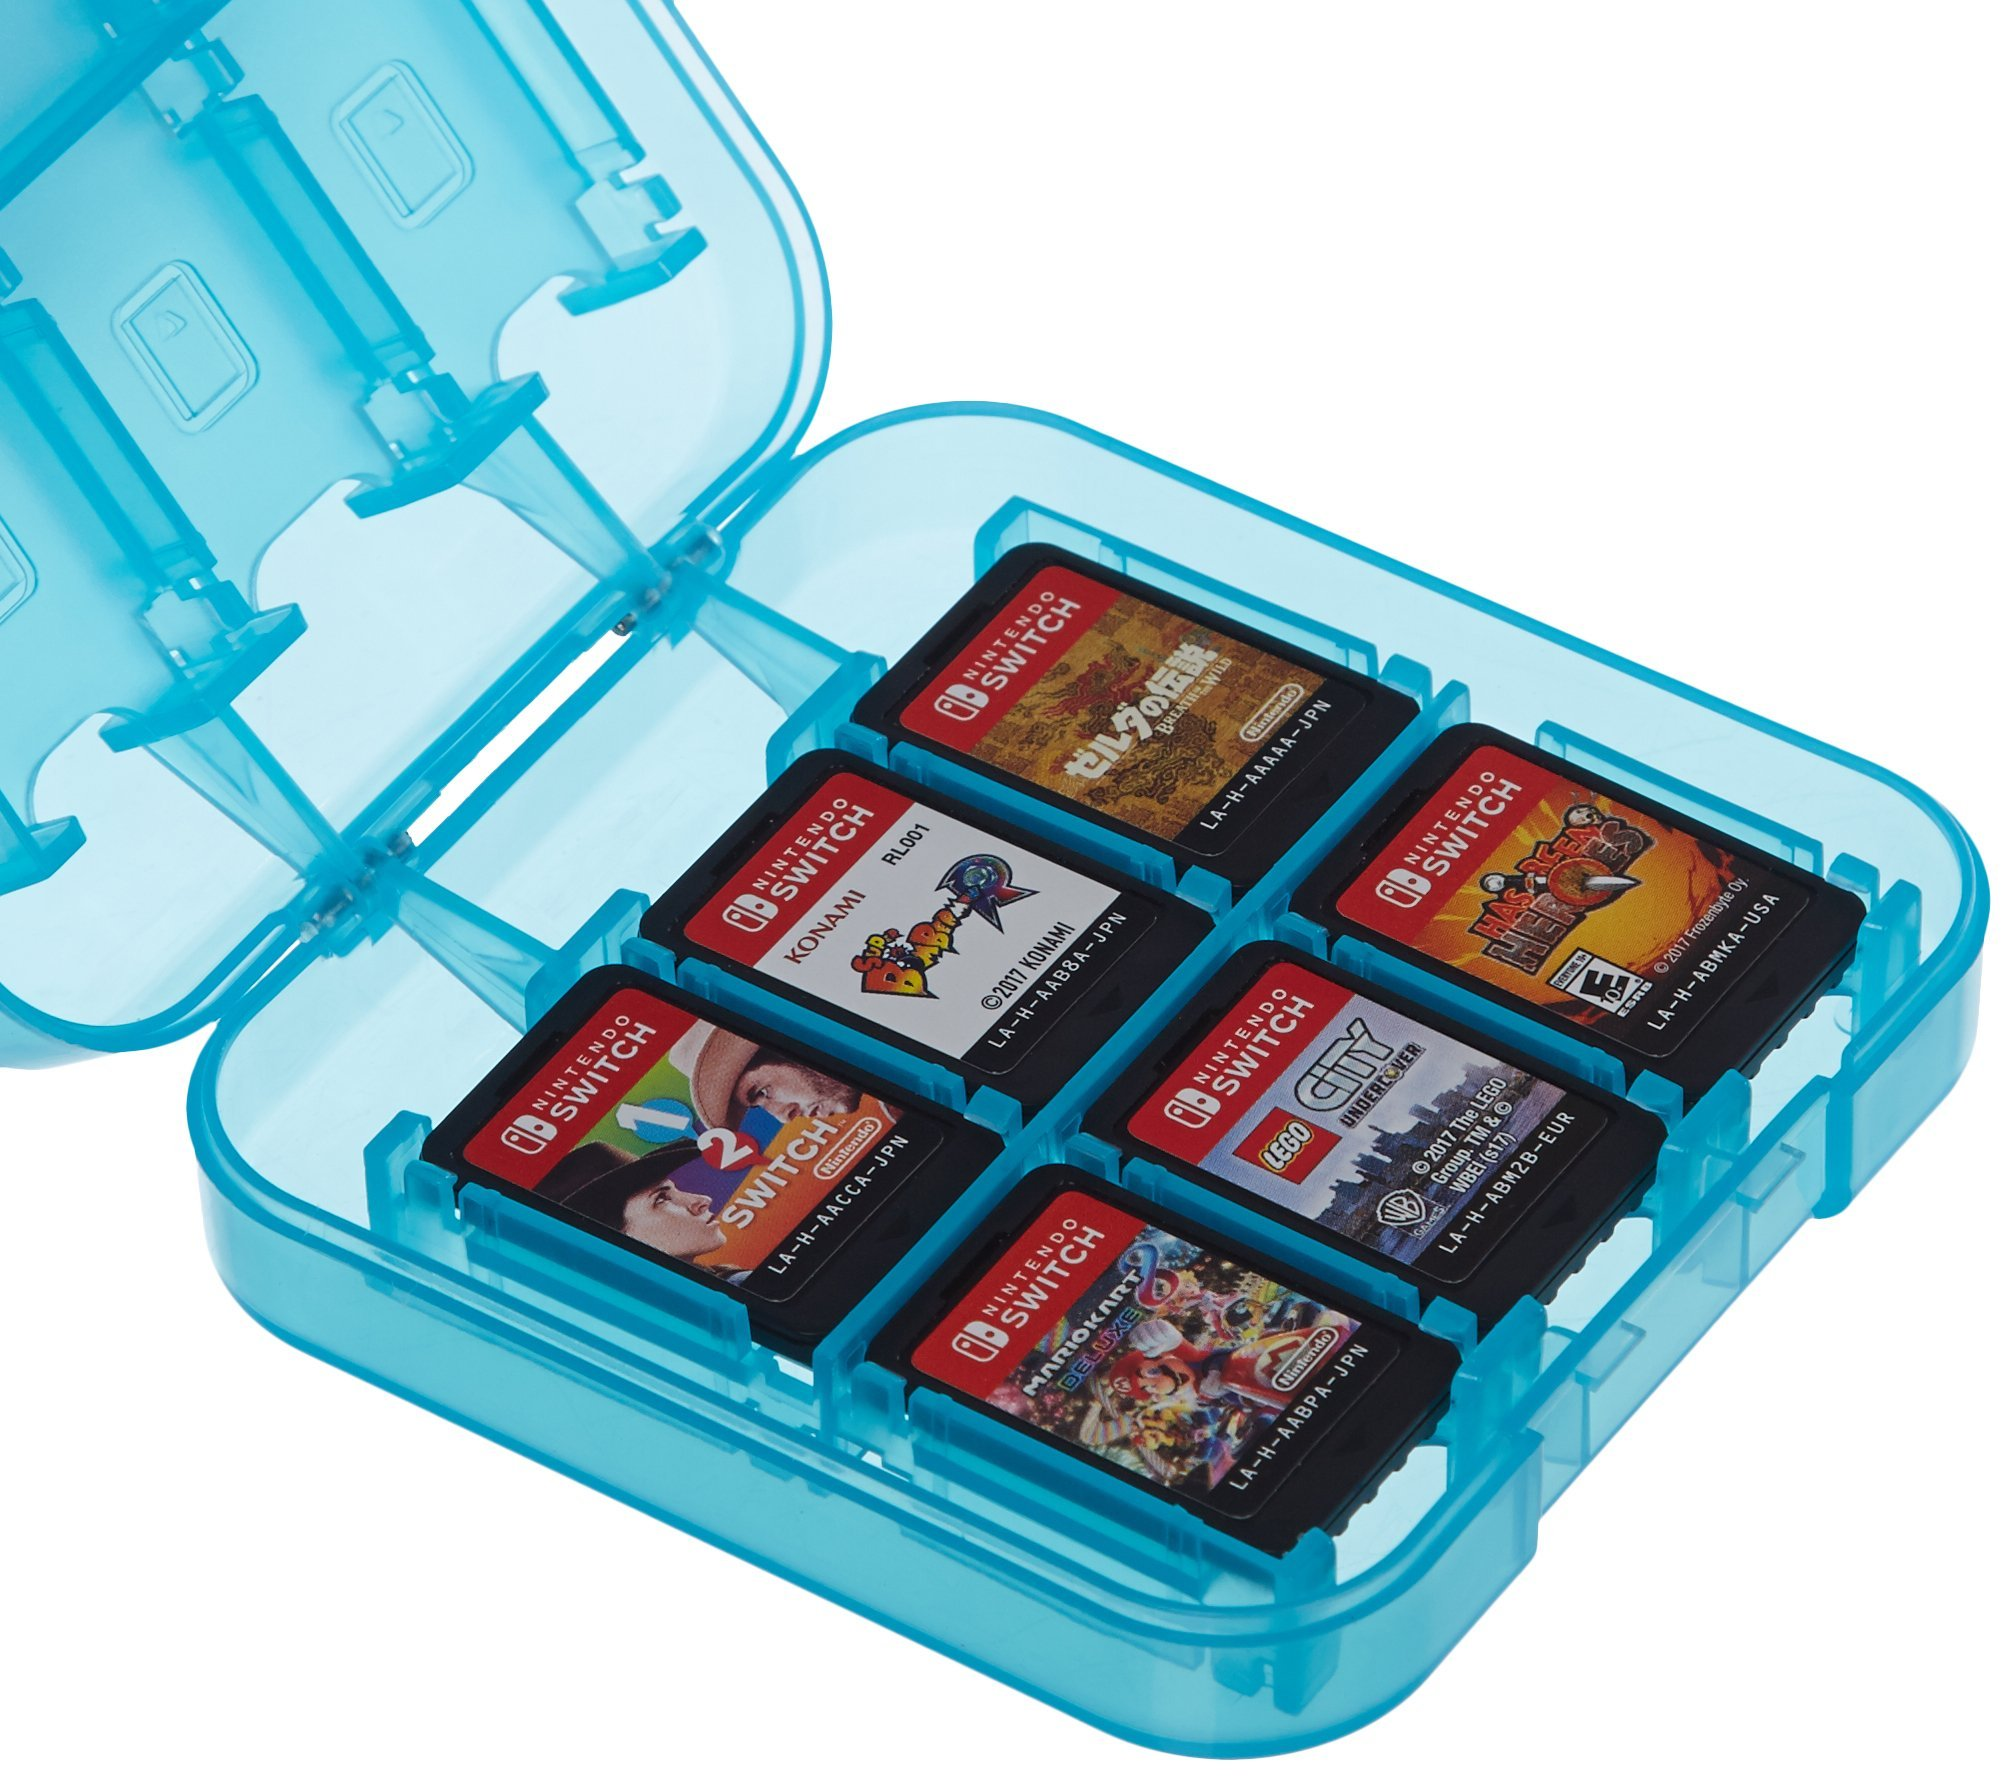 Amazon Basics Game Storage Case for 24 Nintendo Switch Games - 3.4 x 3.4 x 1 Inches, Blue